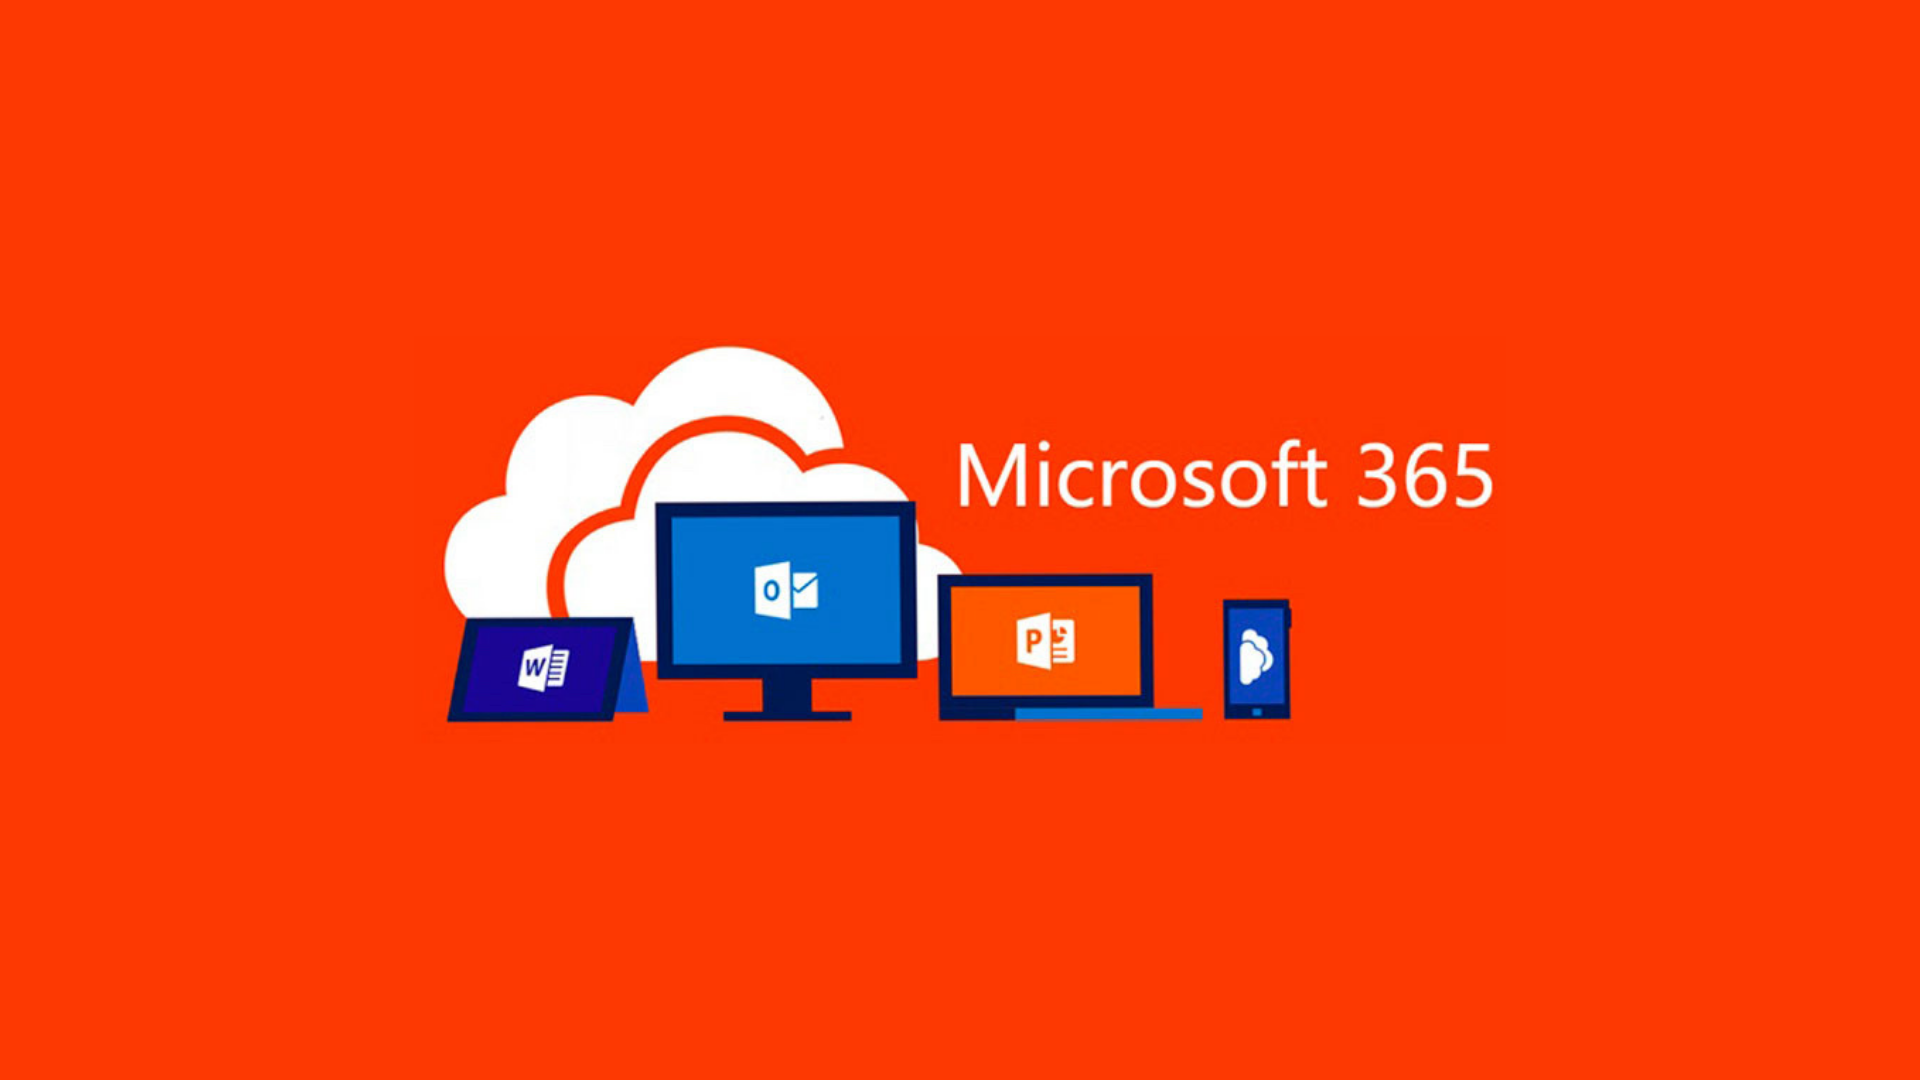 What is Microsoft 365?